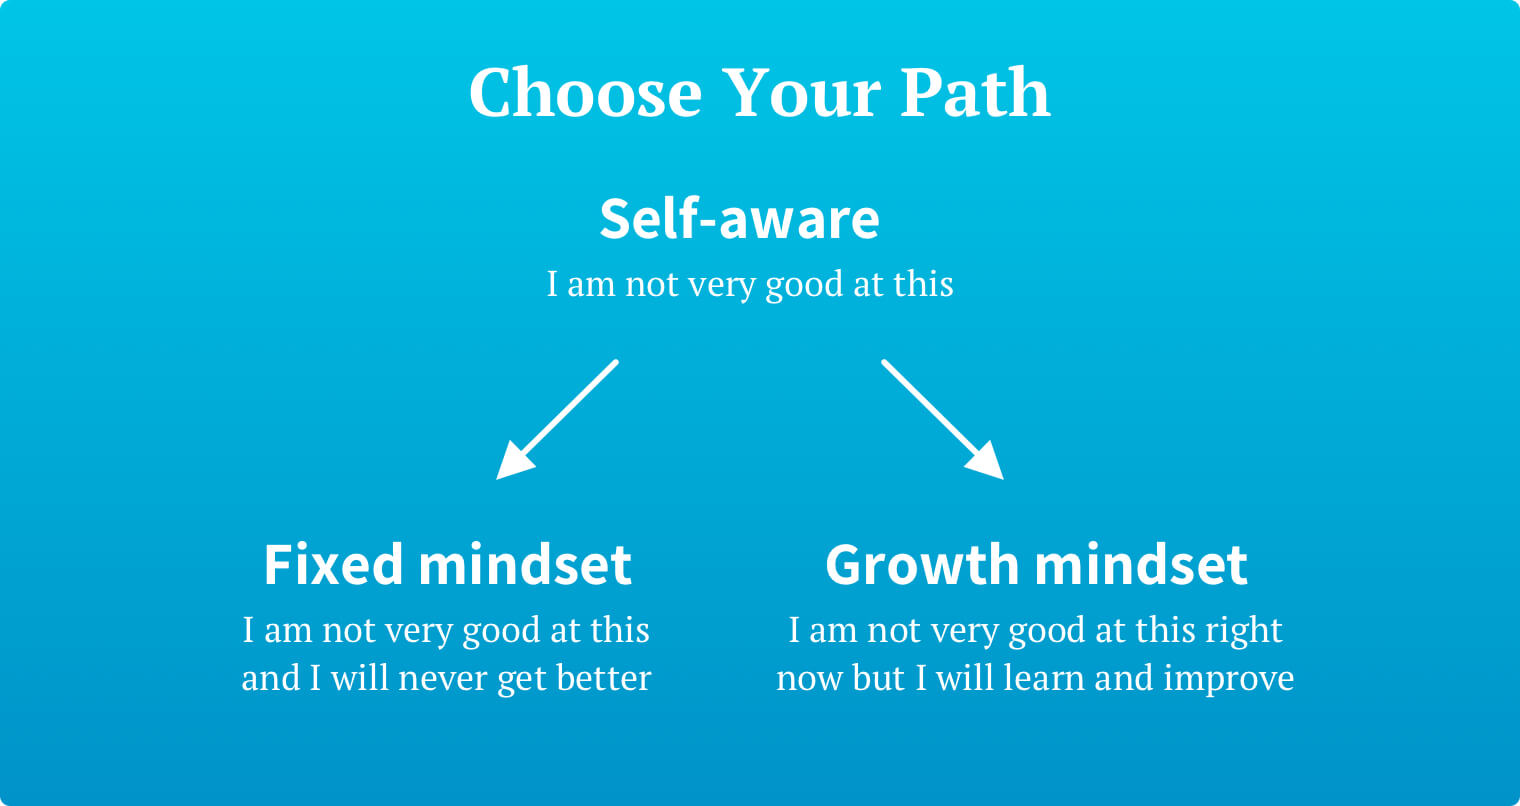 A diagram illustrating the two paths an individual may choose once they become aware that they lack a particular skill. Those who choose a fixed mindset believe that they cannot improve that skill and are stuck in place. Those who choose a growth mindset acknowledge their current situation and make plans to develop their skill set and improve.